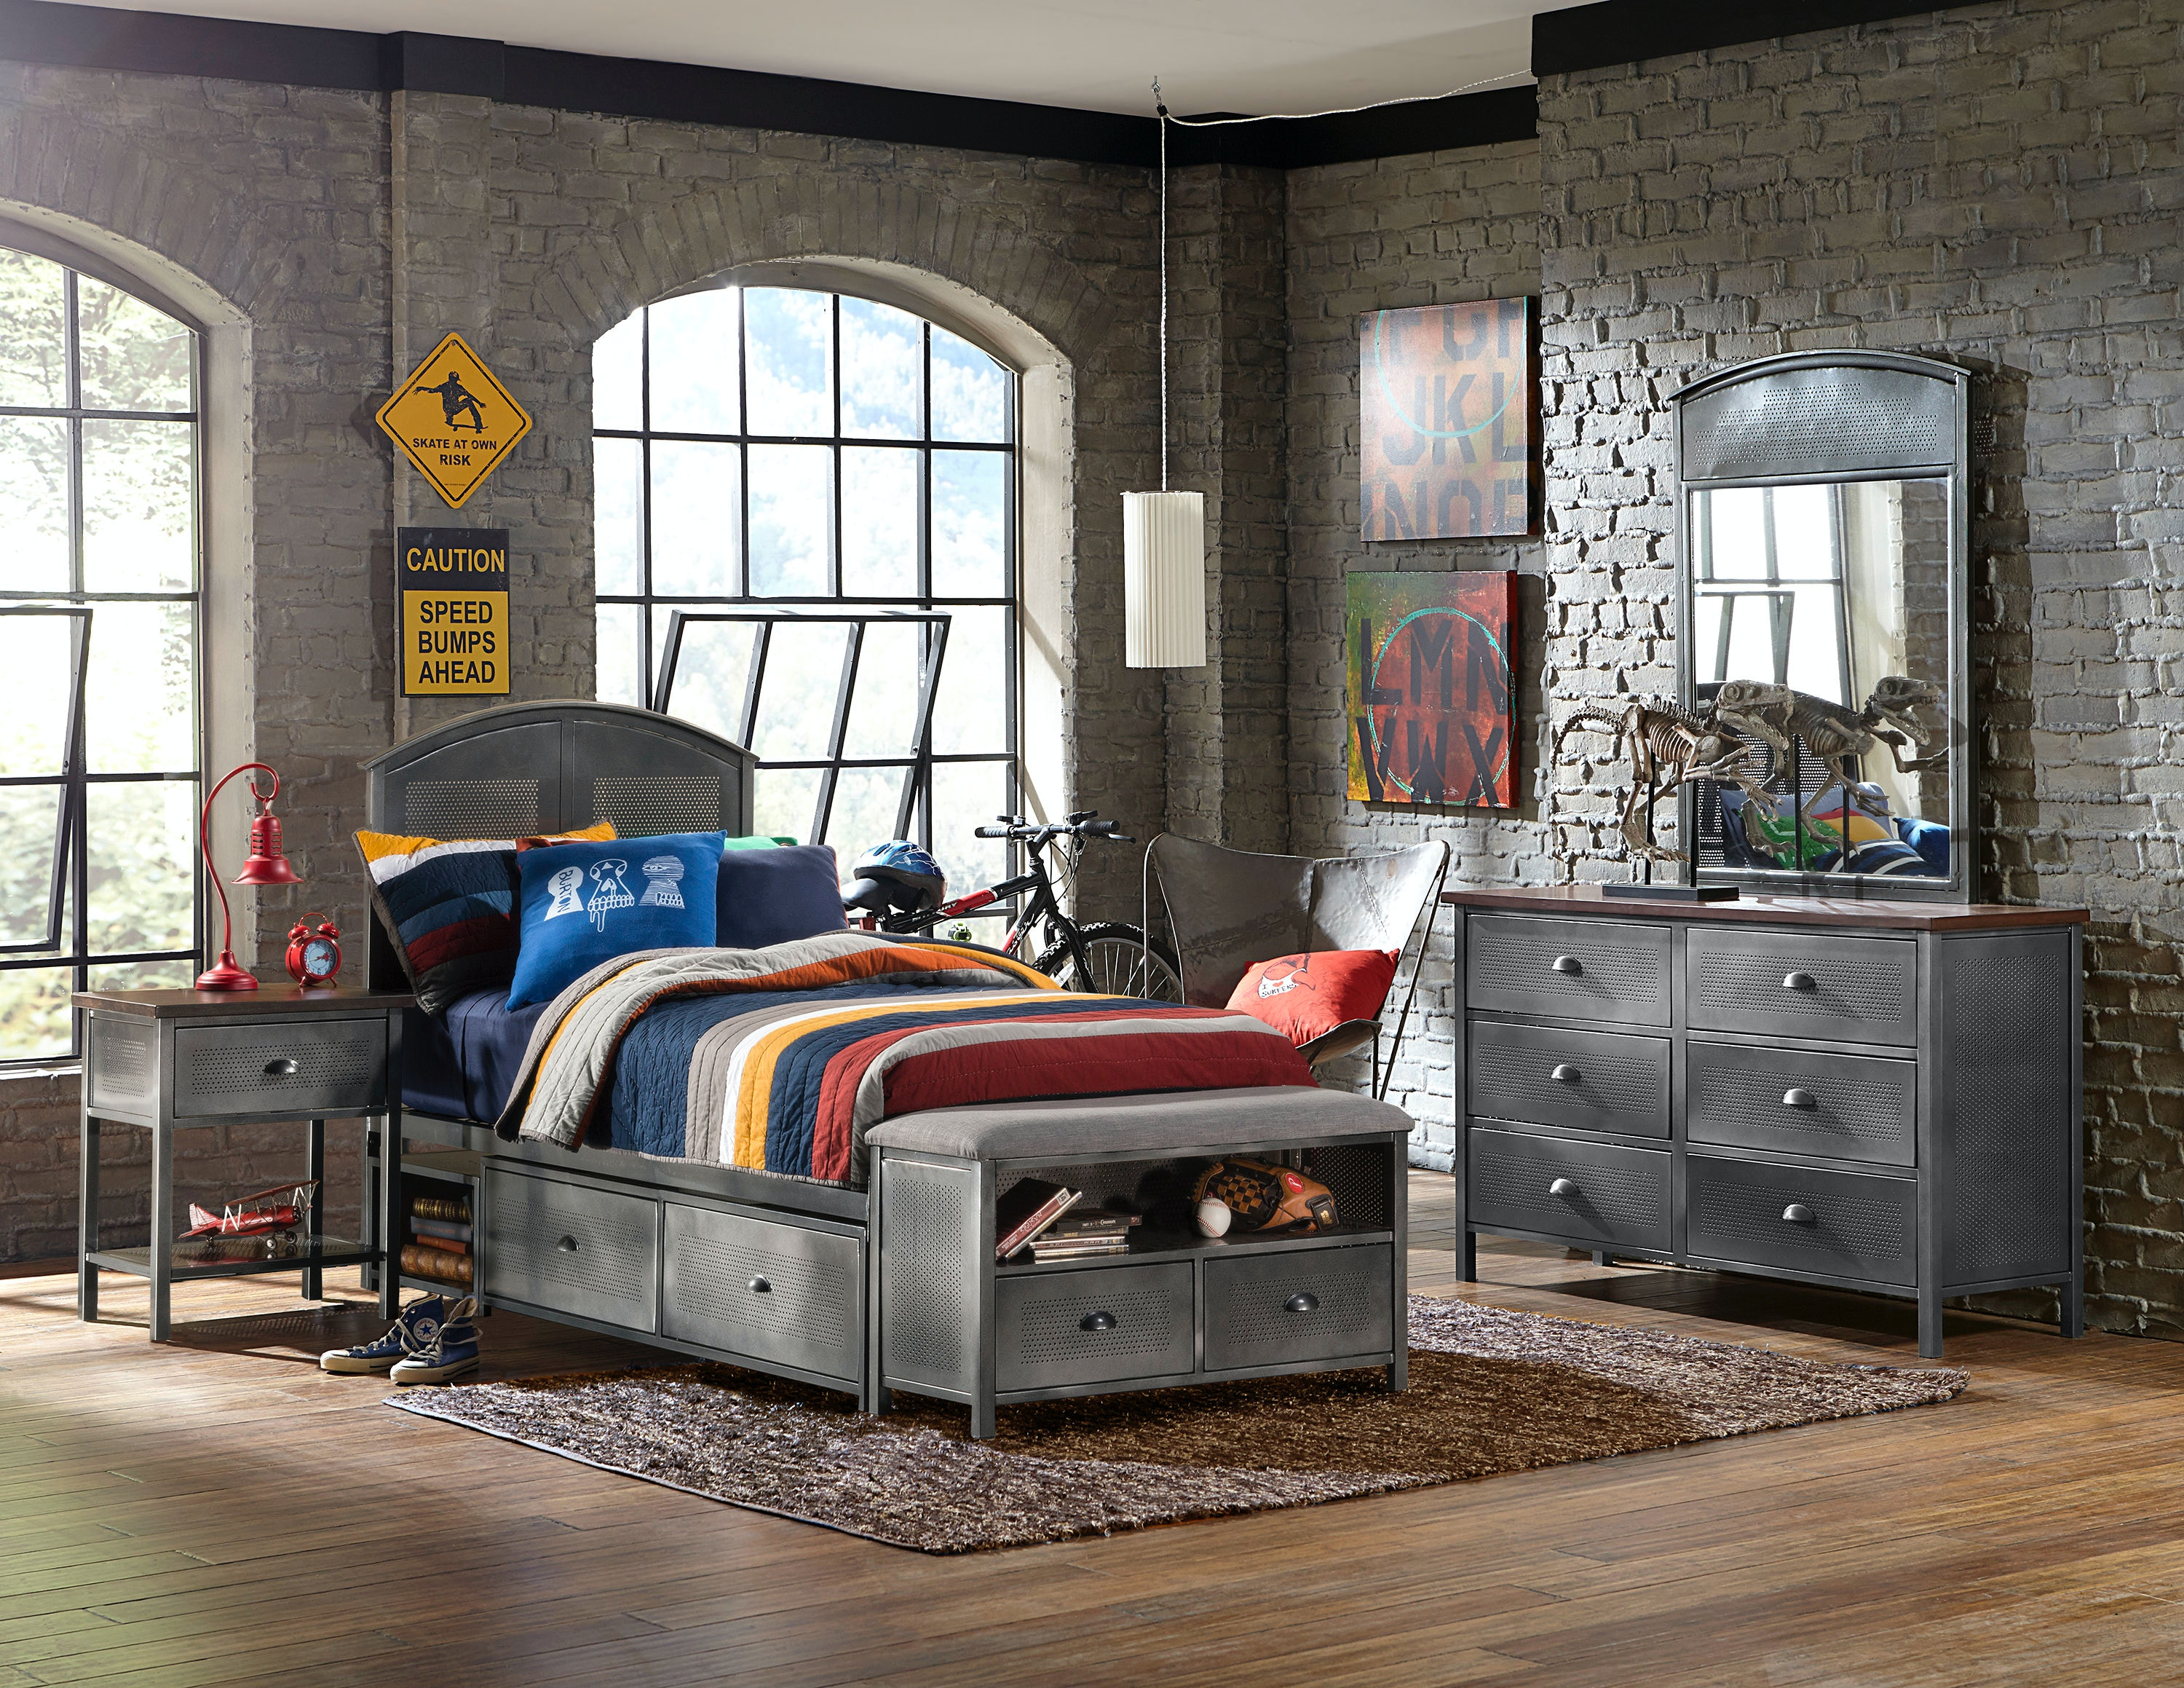 Hillsdale Furniture Urban Quarters Four (4) PC Panel Storage Bed Set With  Footboard Bench